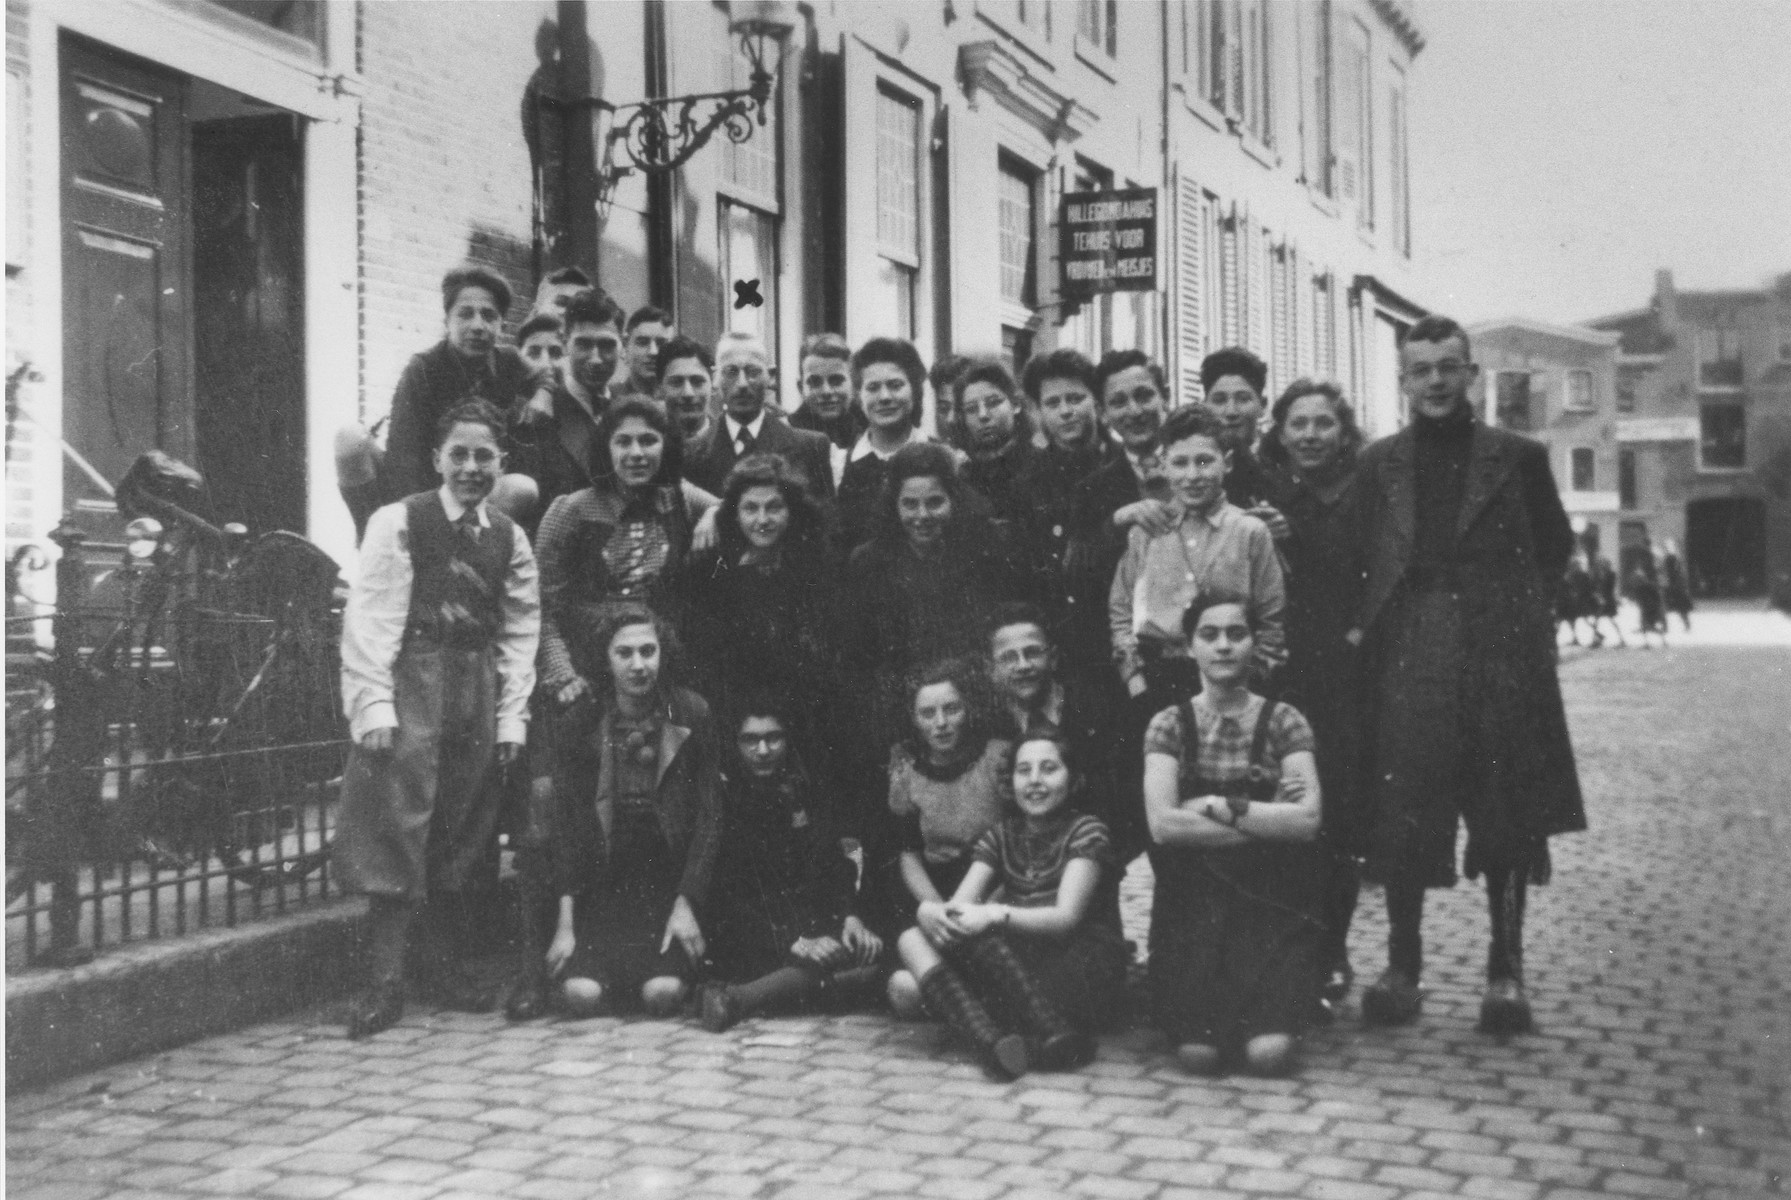 Students of the Jewish school of Zwolle pose on the street outside the school building.  Among those pictured are the bookkeeping teacher, Mr. Hershel (under the X) and Doris Bloch (front row, right).